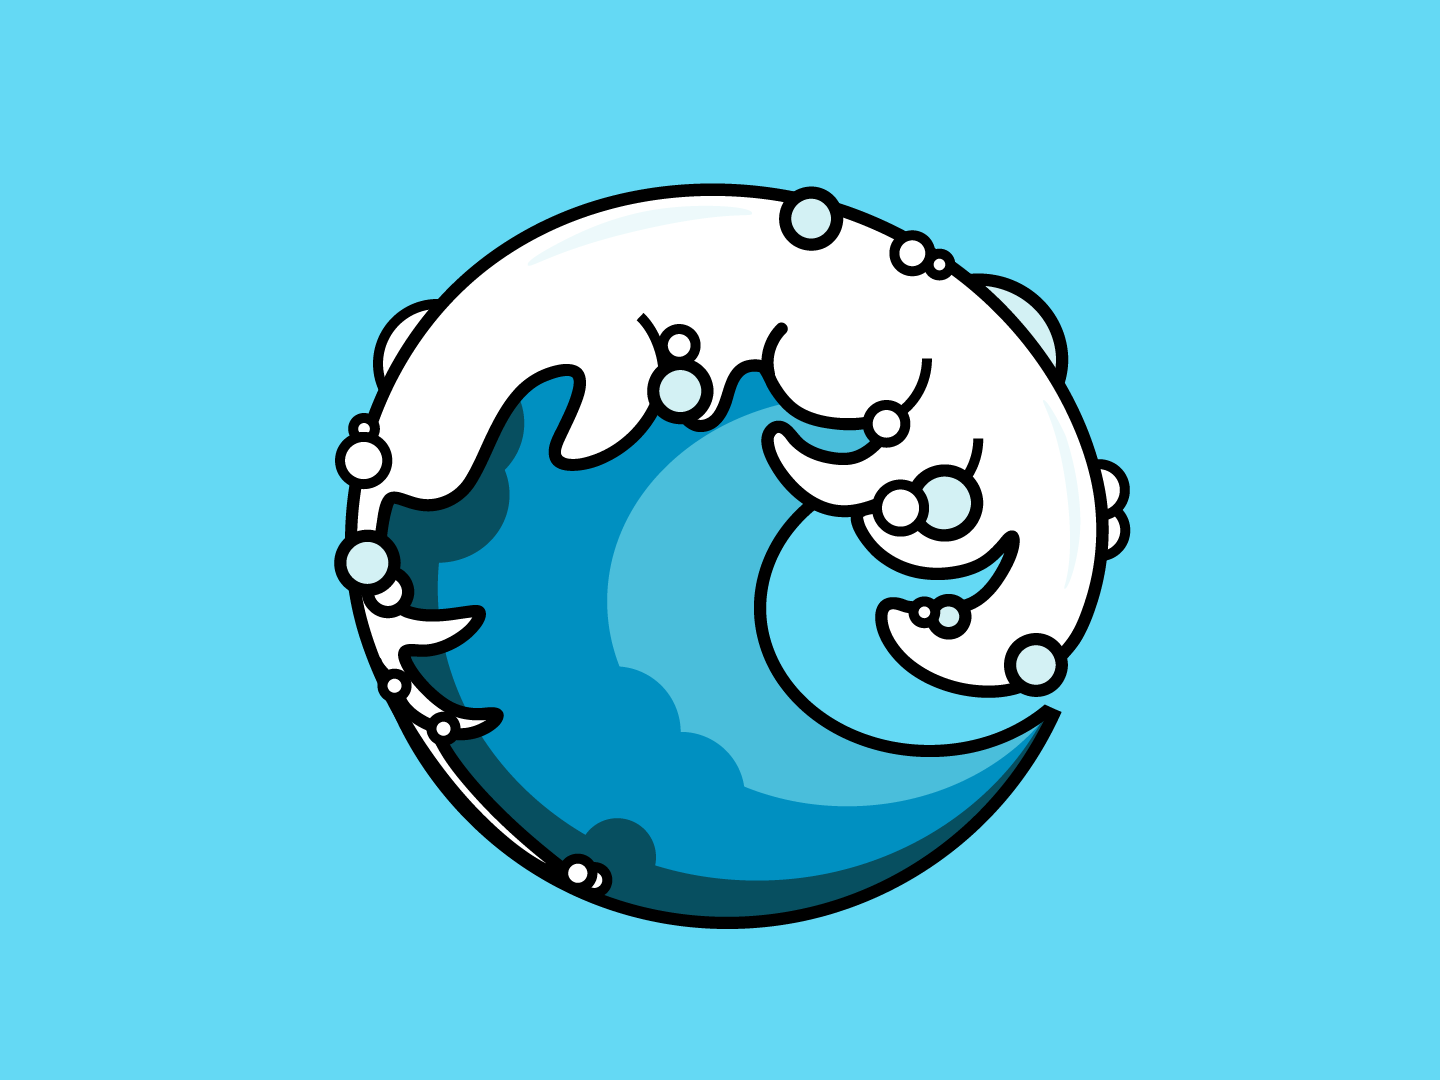 Water Wave water wave vector logo design icon illustration adobe illustrator